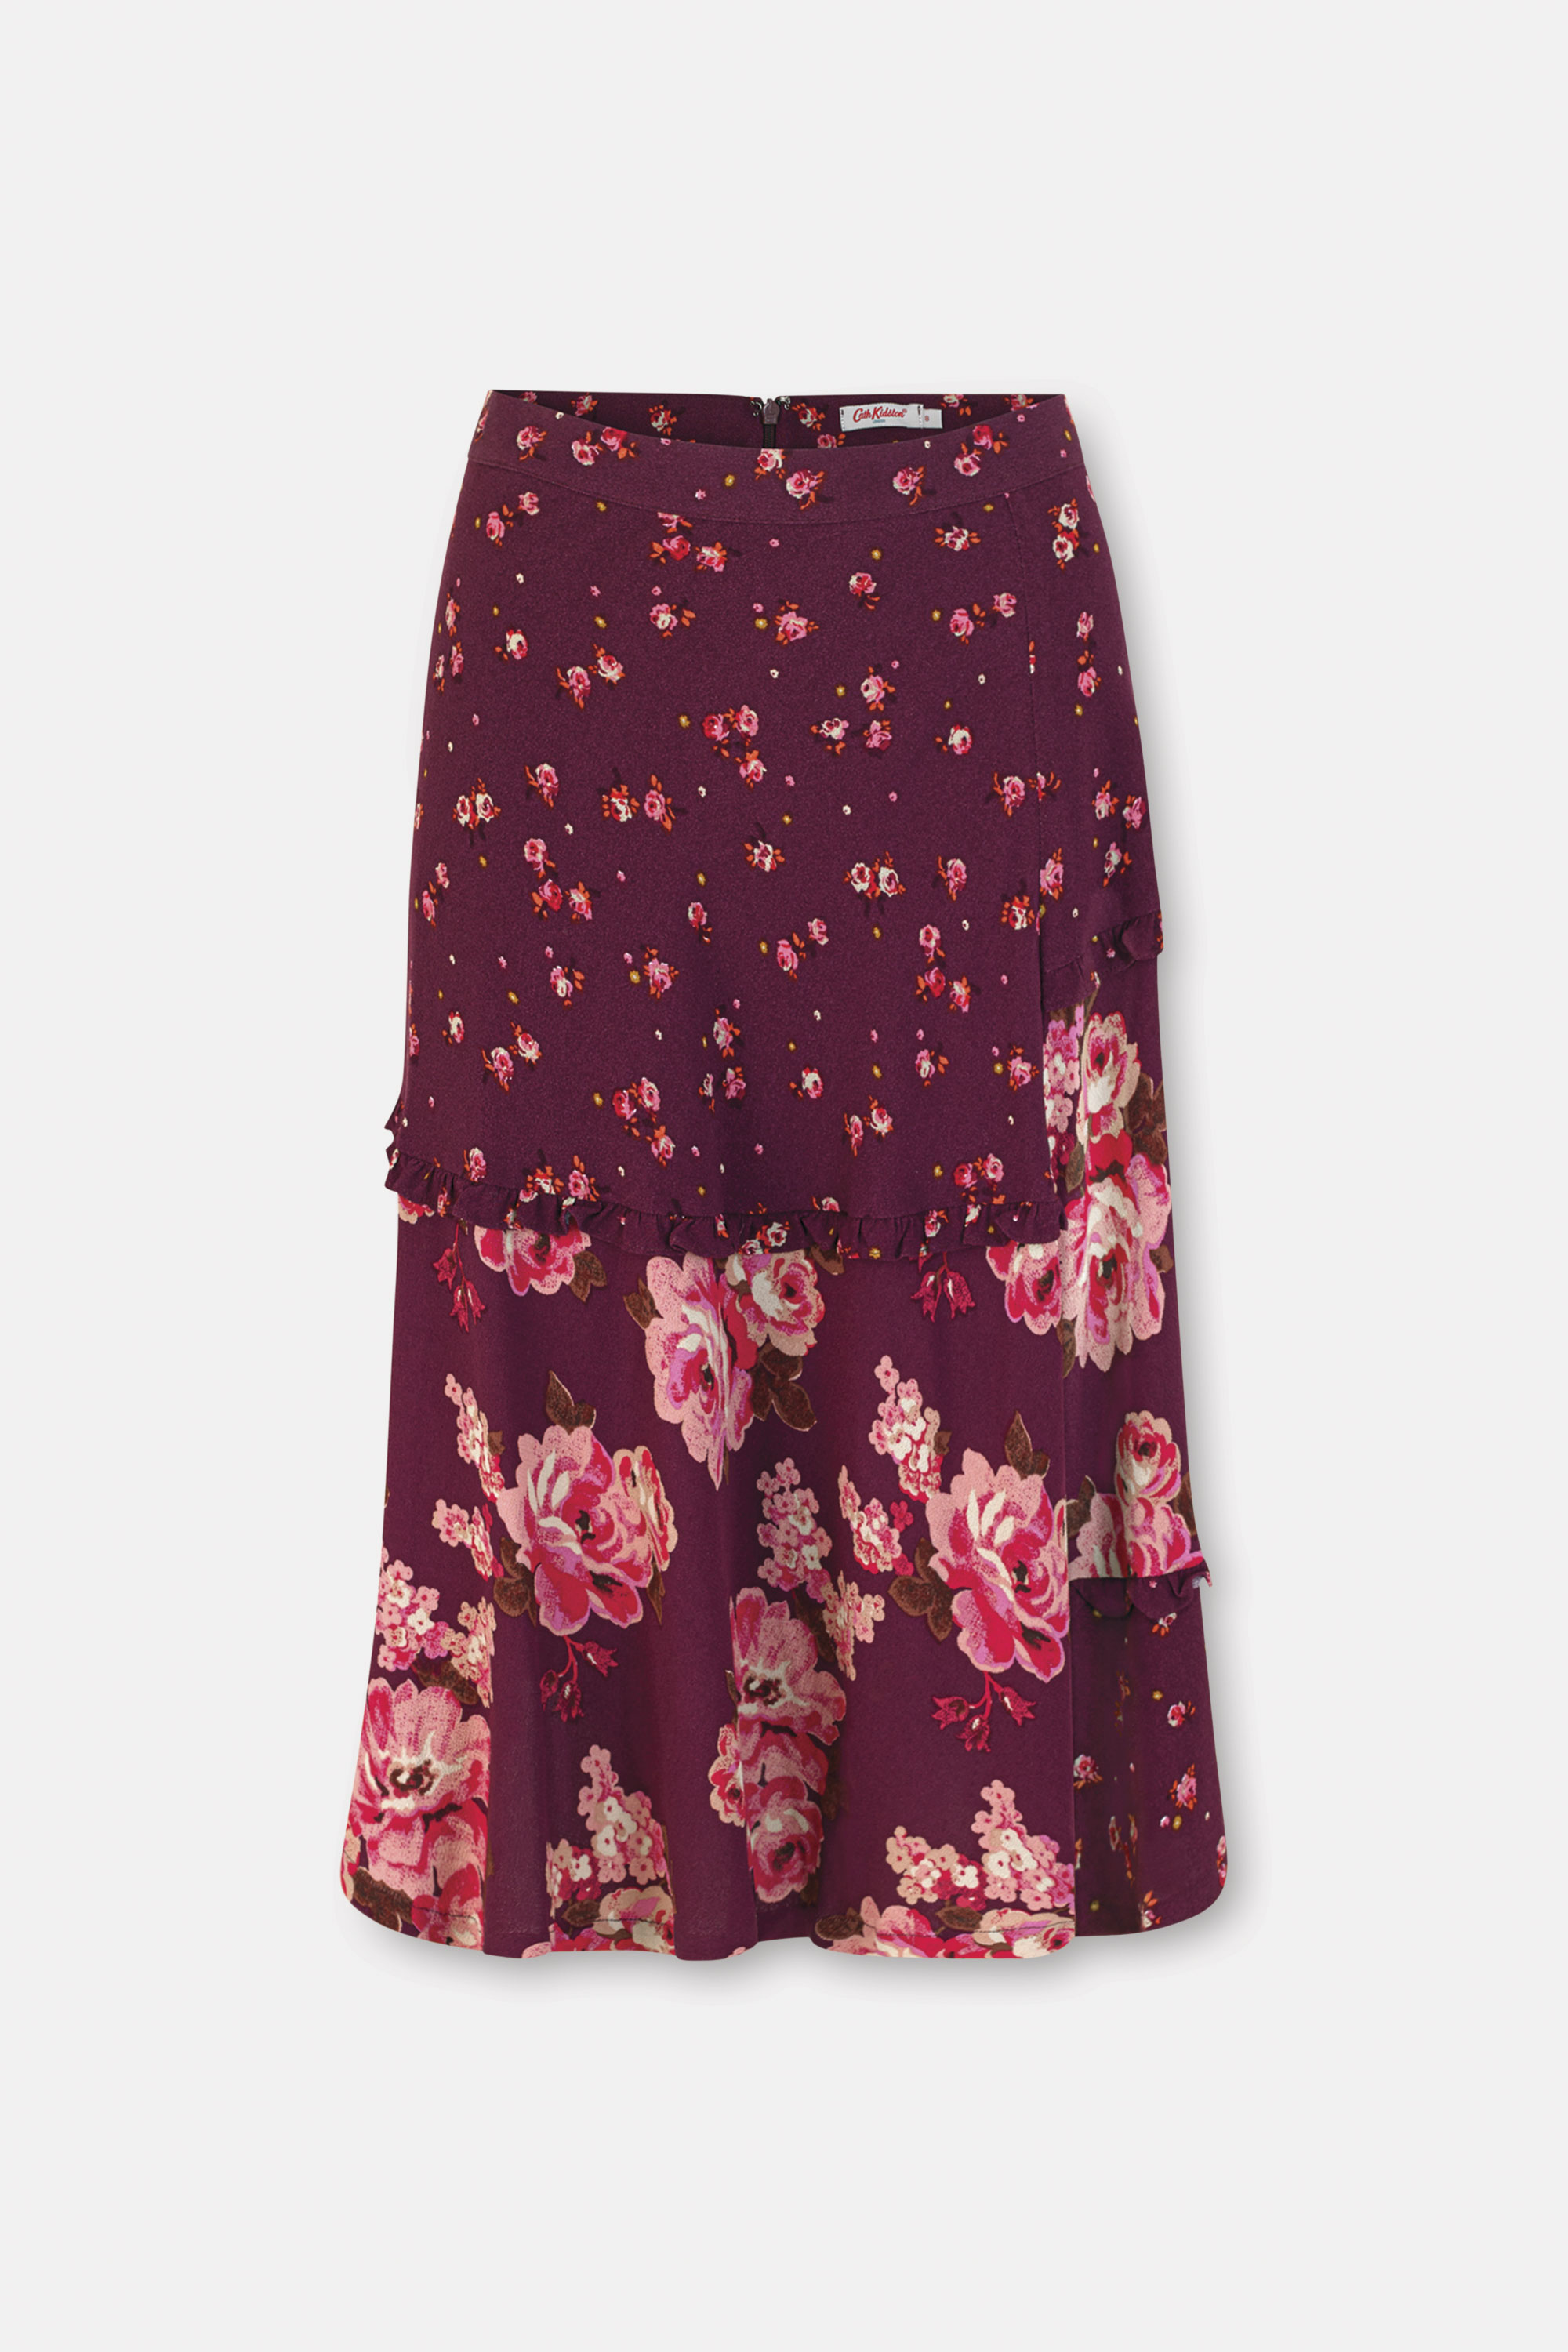 Cath Kidston Patchwork Florals Frill Trim Skirt in Plum, Wimbourne Ditsy, 100% Viscose, 6